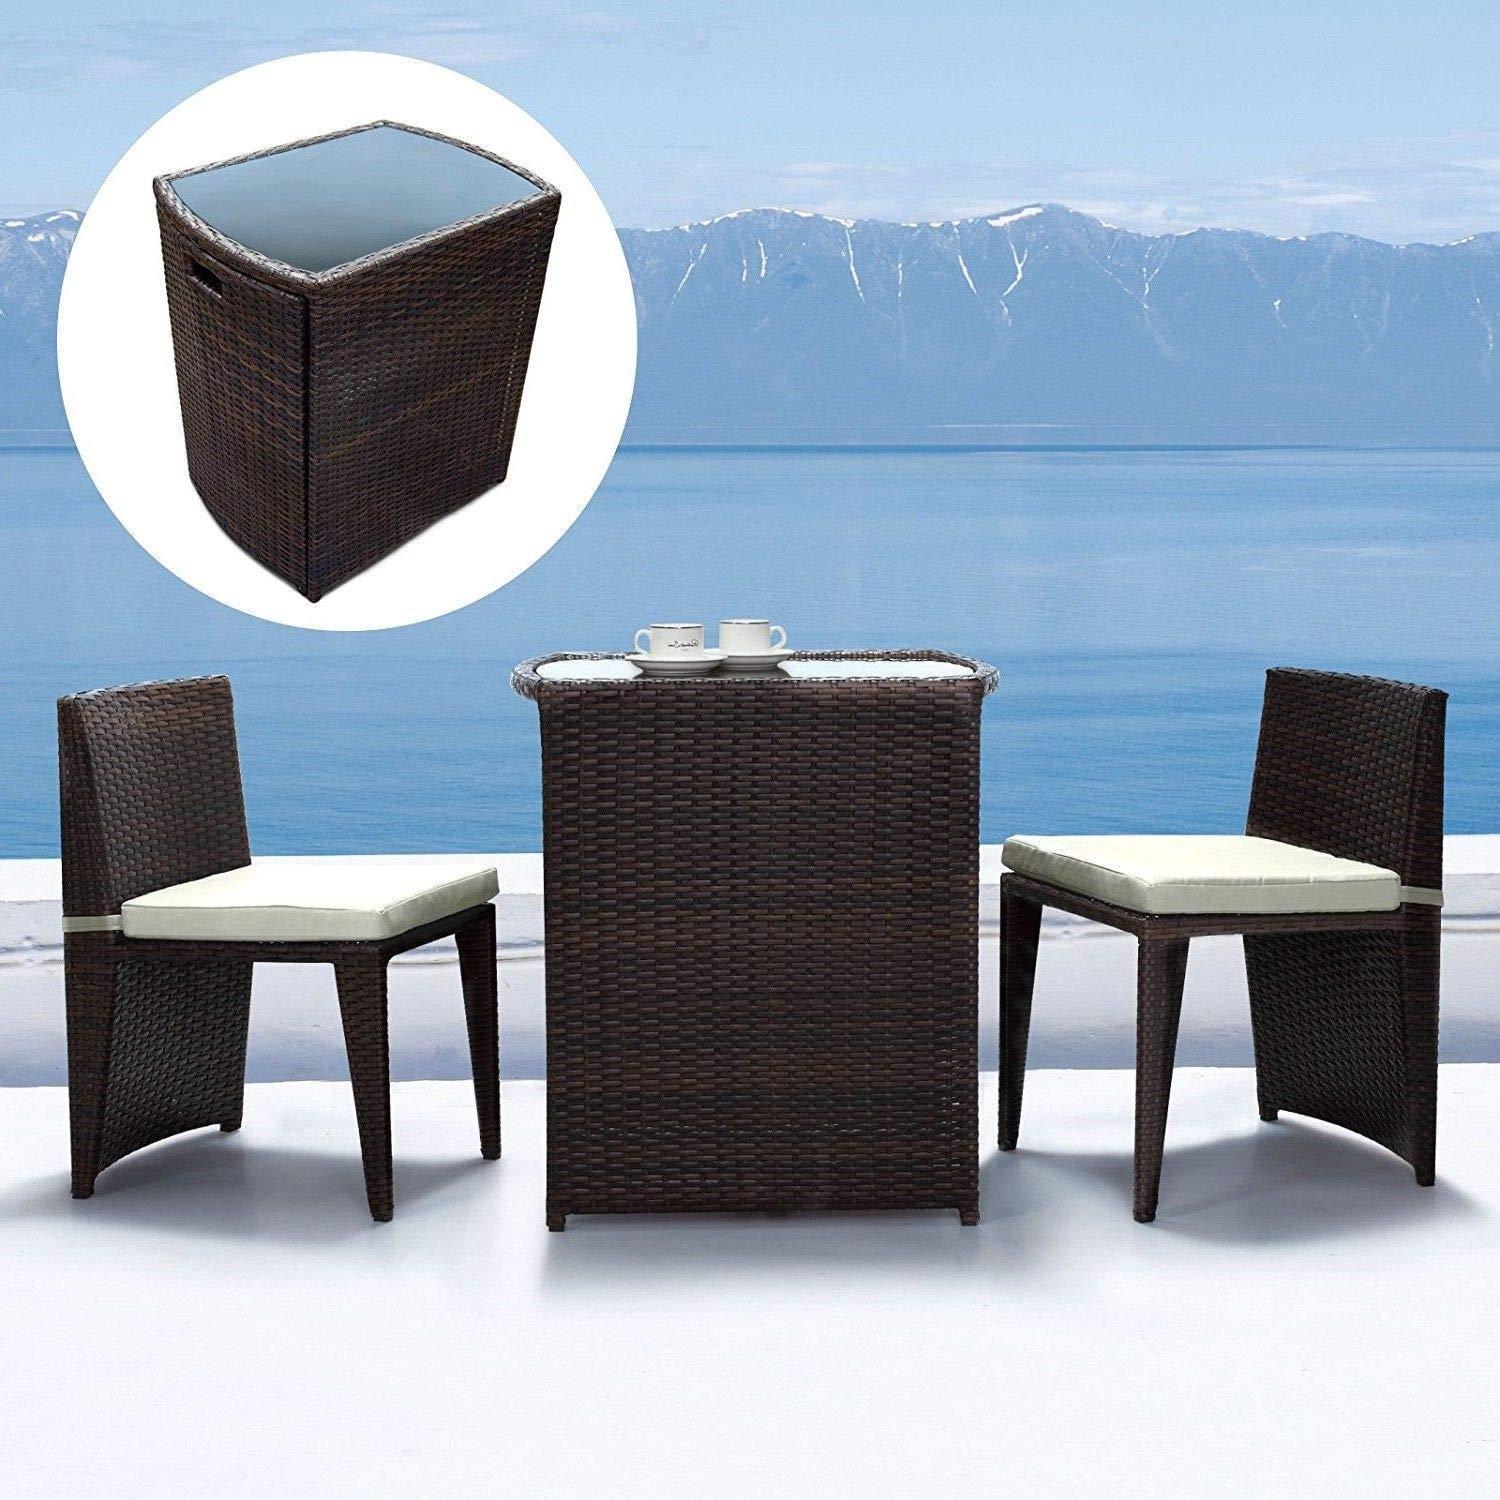 2 Chairs /& Table Rattan Set Garden Furniture Foldaway Space Saving Outdoor